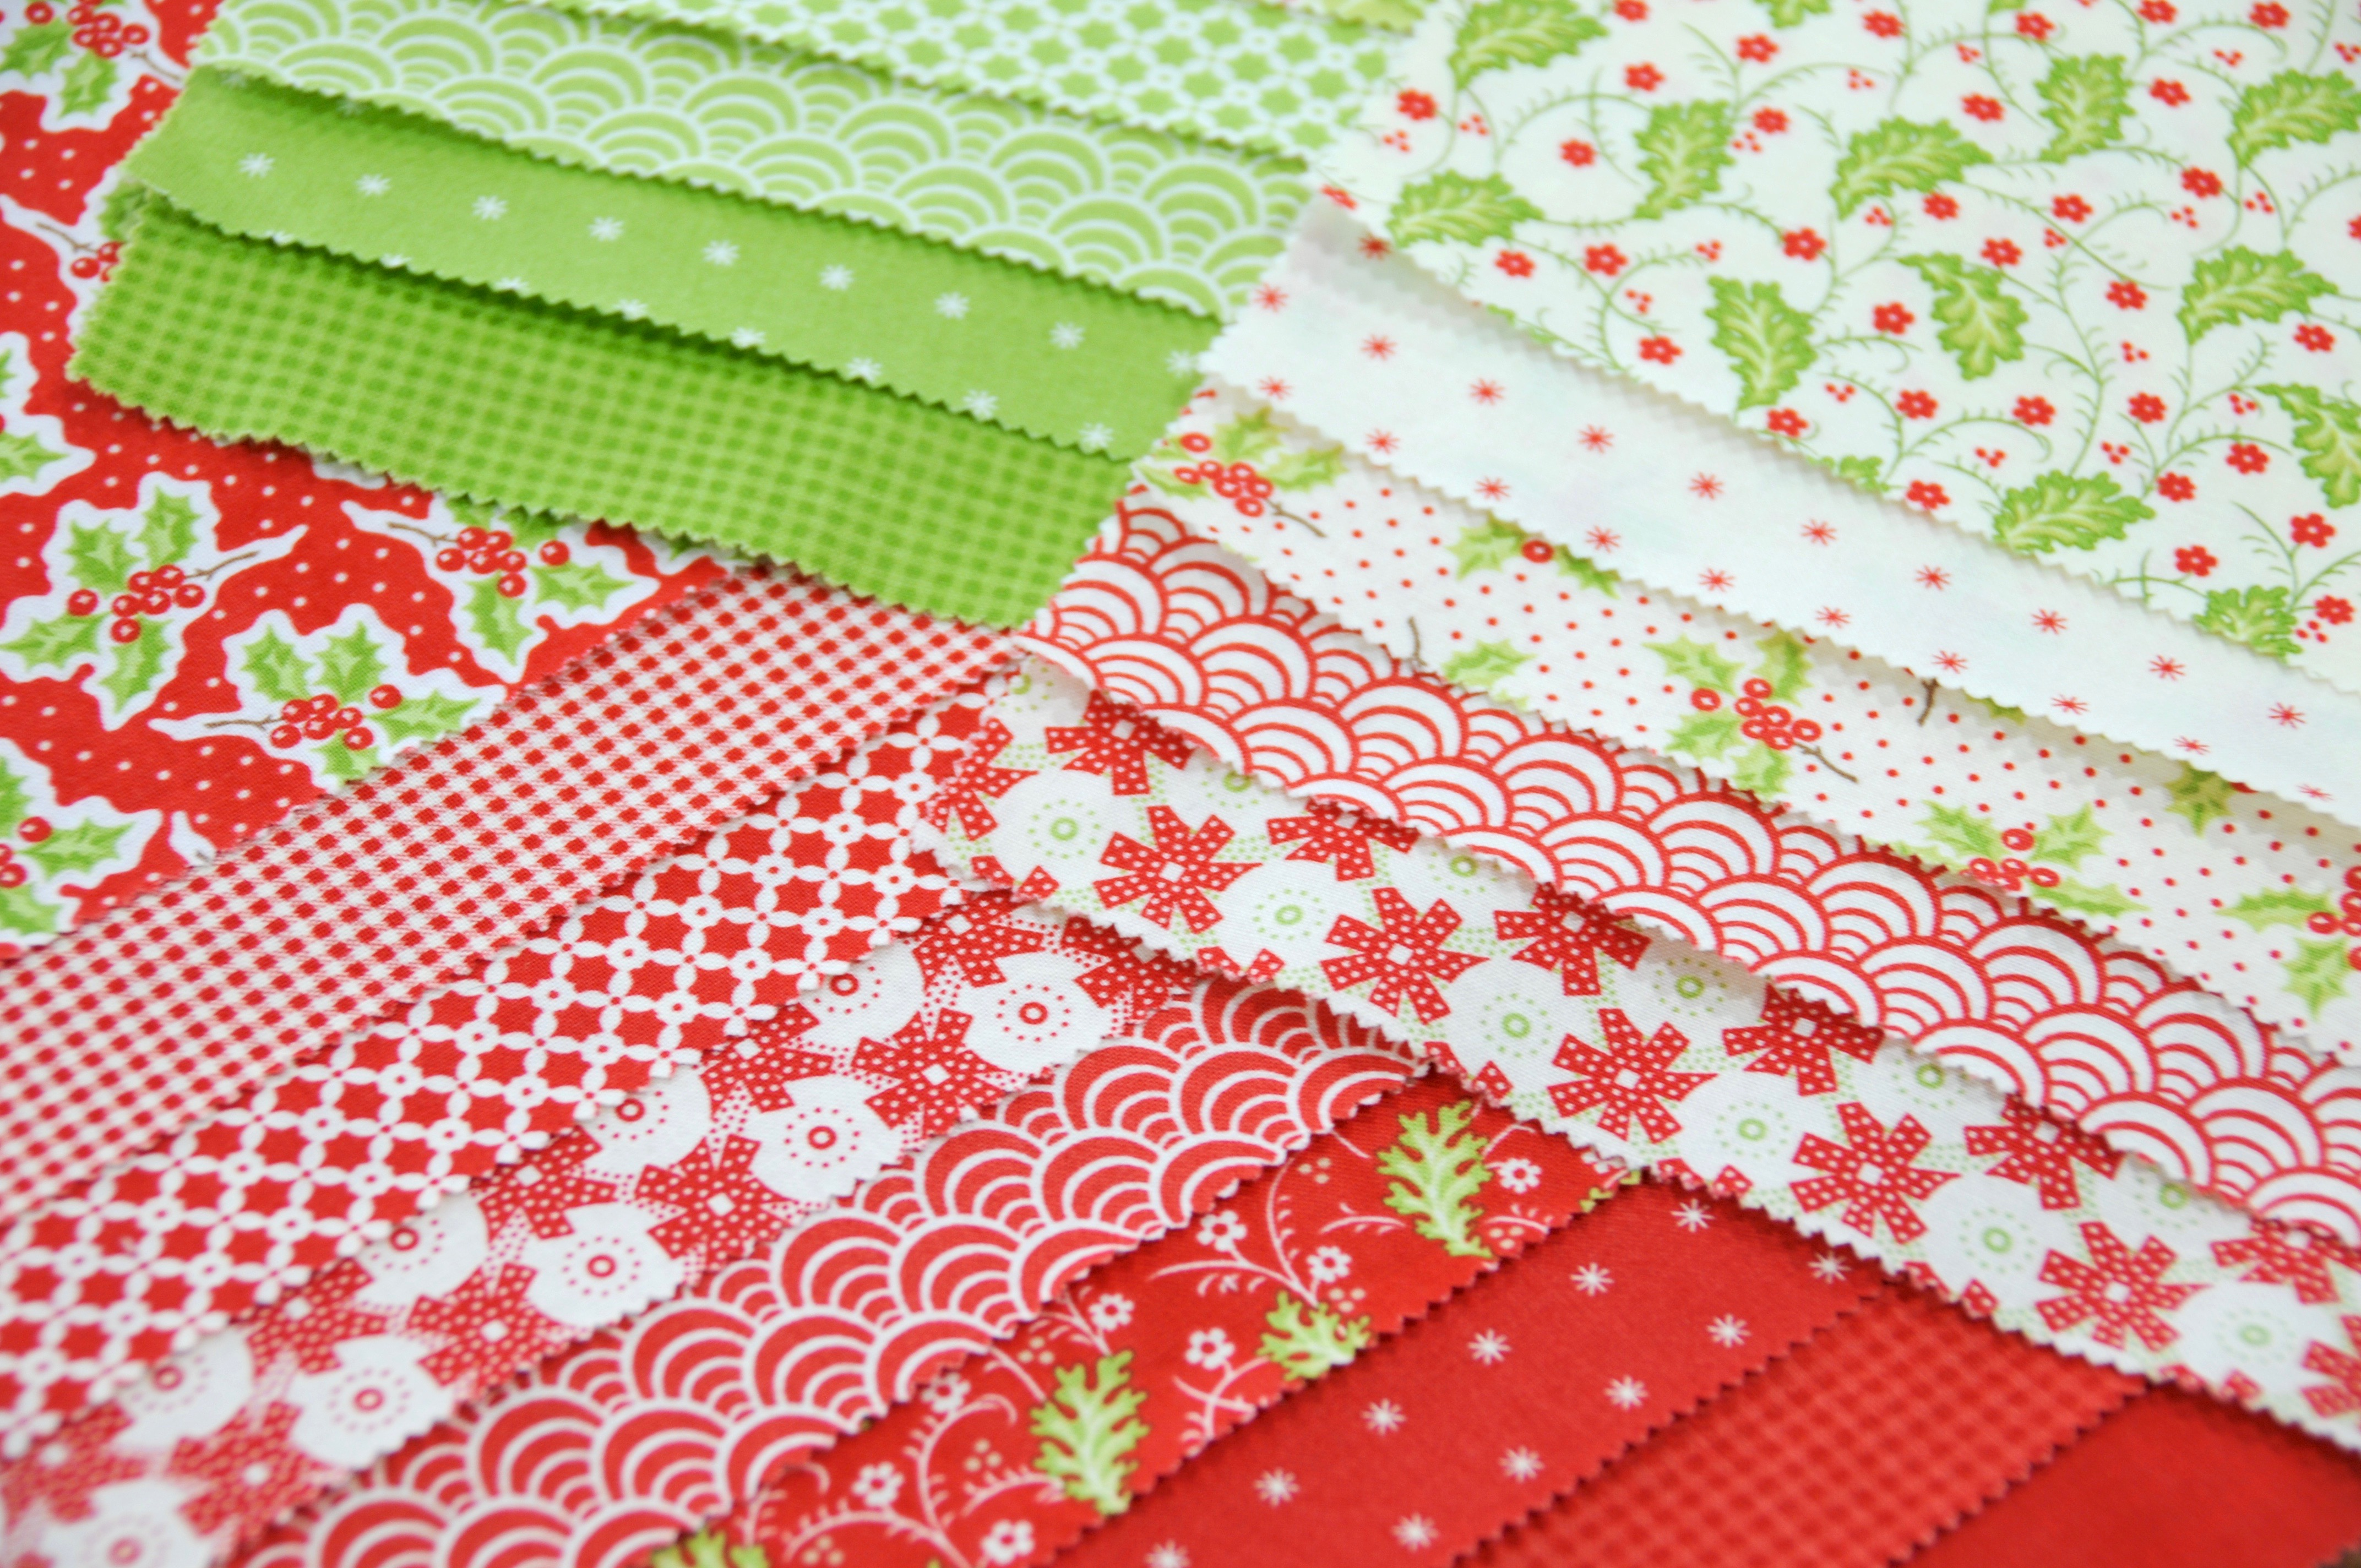 Moda Christmas Fabric 2019.A Look At New Fabric Including Zen Chic Sweetwater Fig